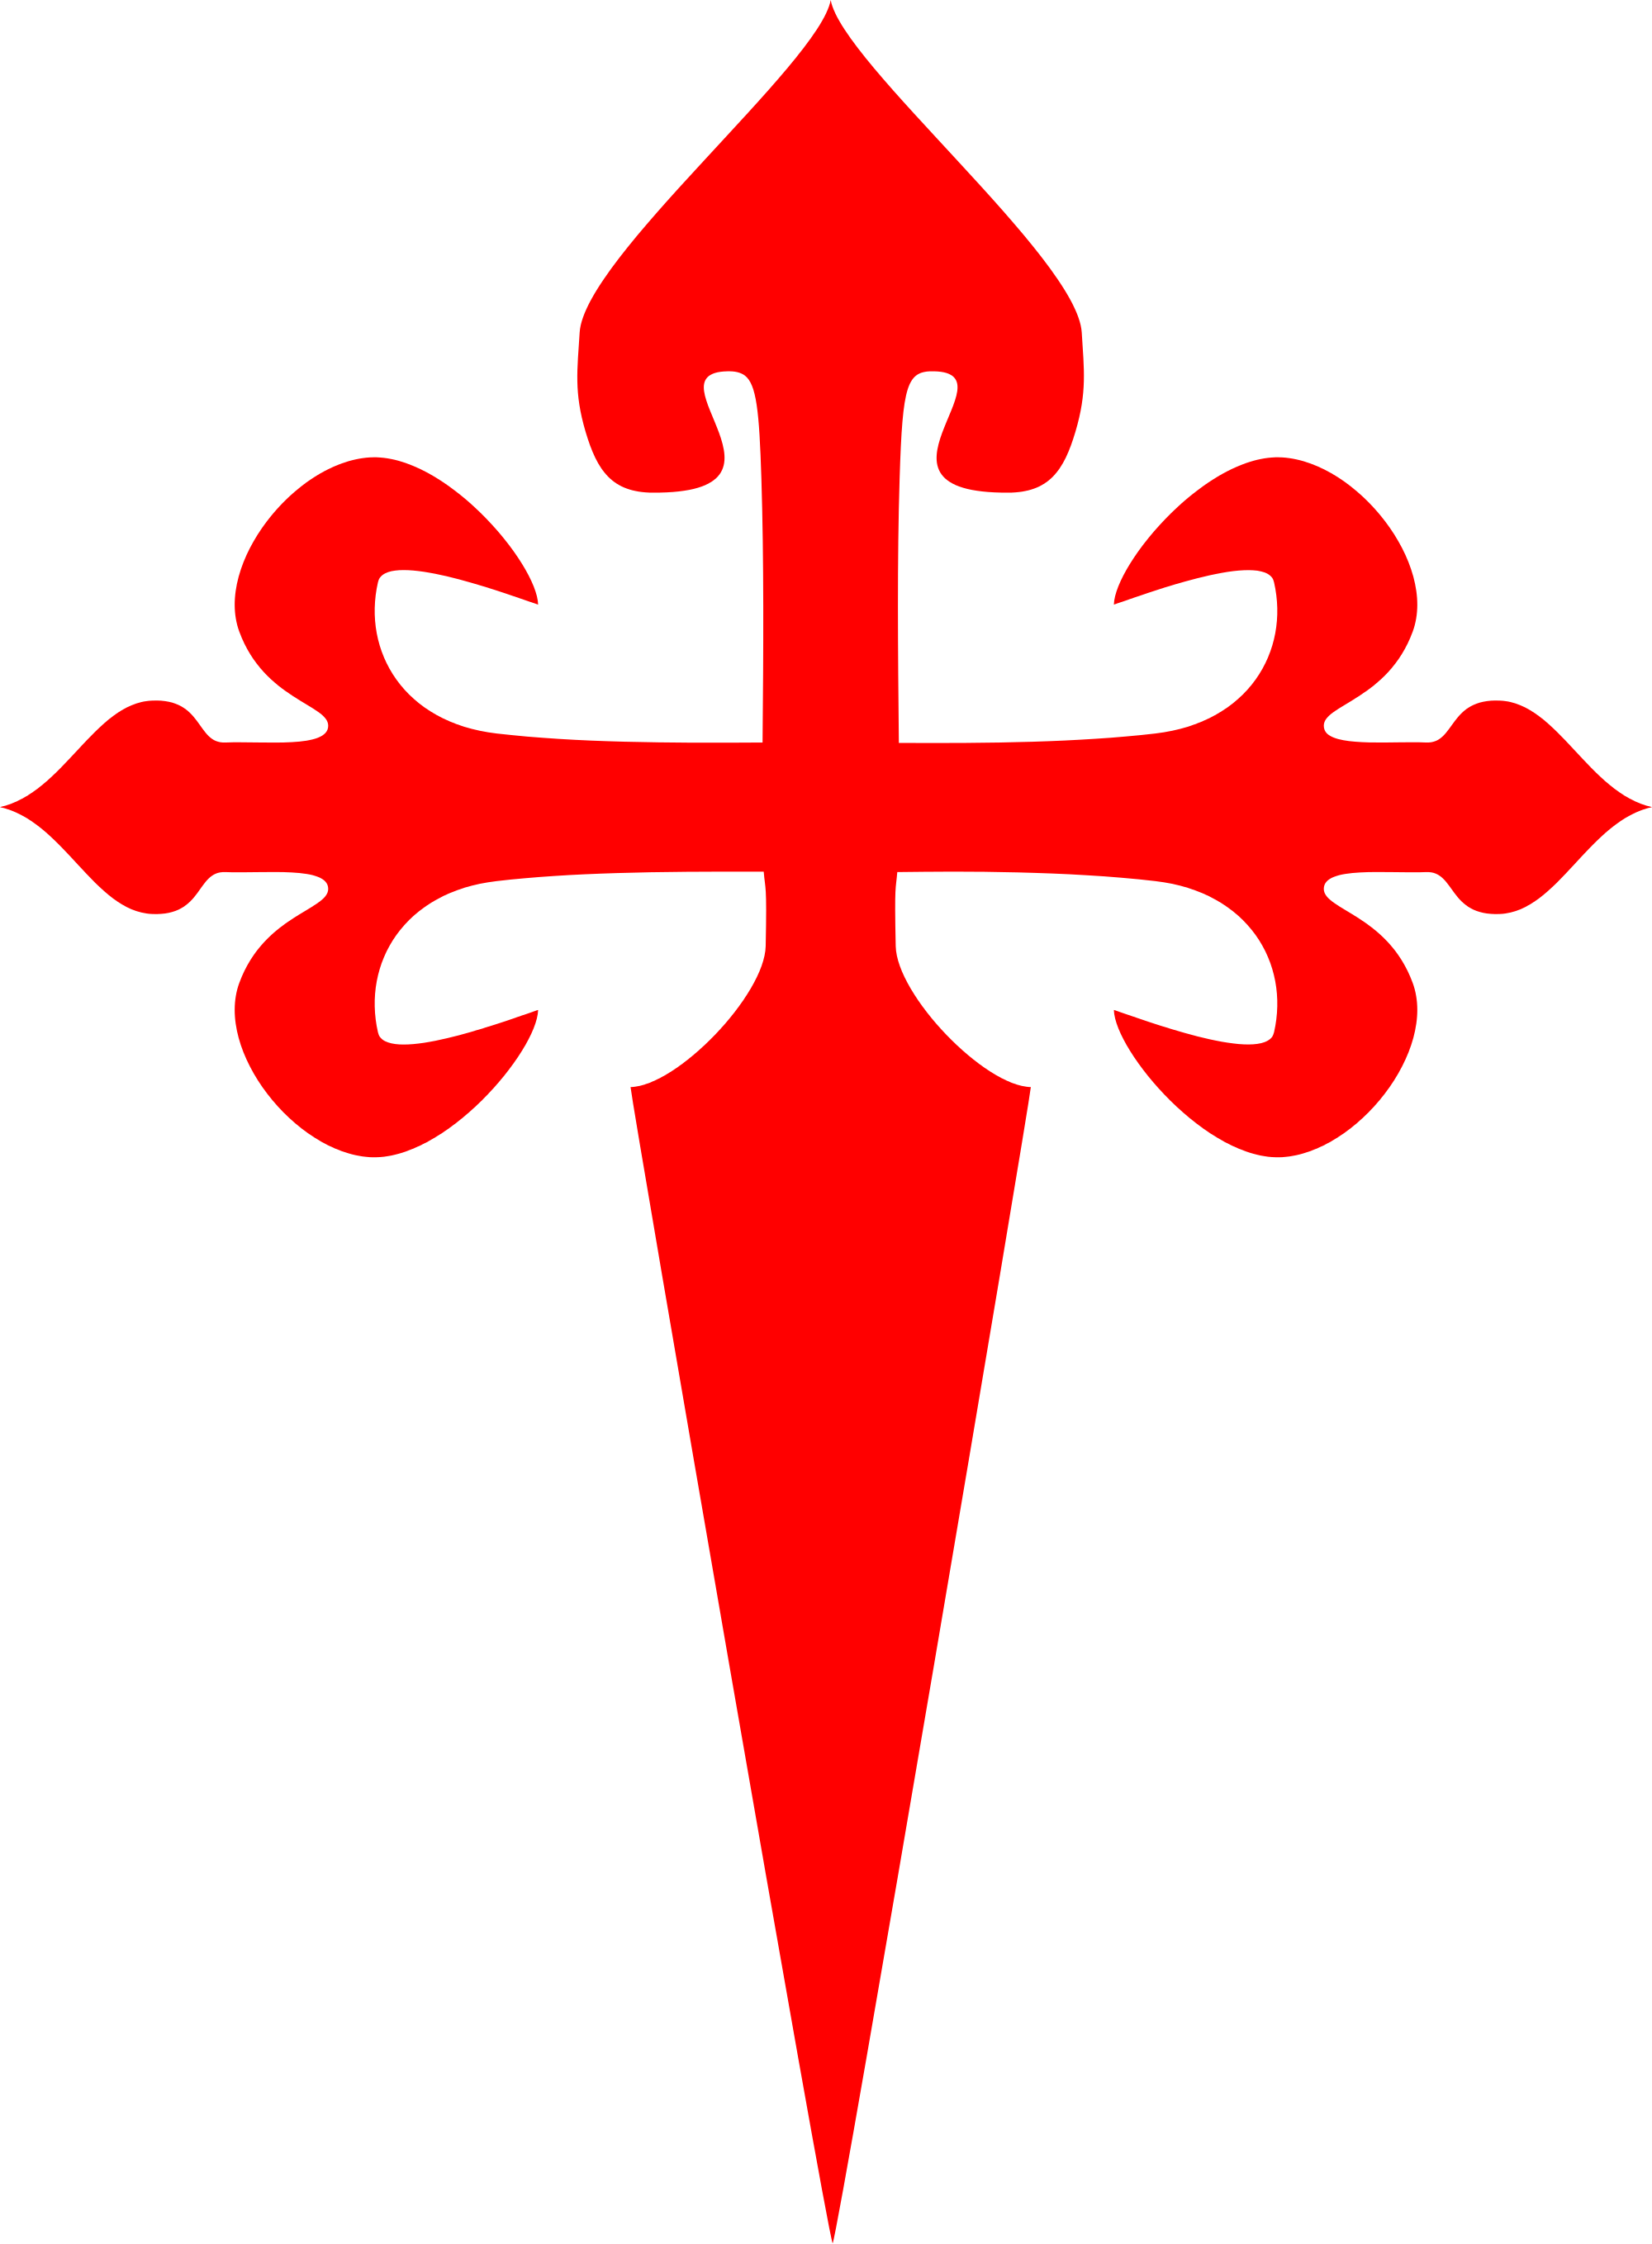 3 cross calvary clipart banner free Cross of Saint James - Wikipedia banner free